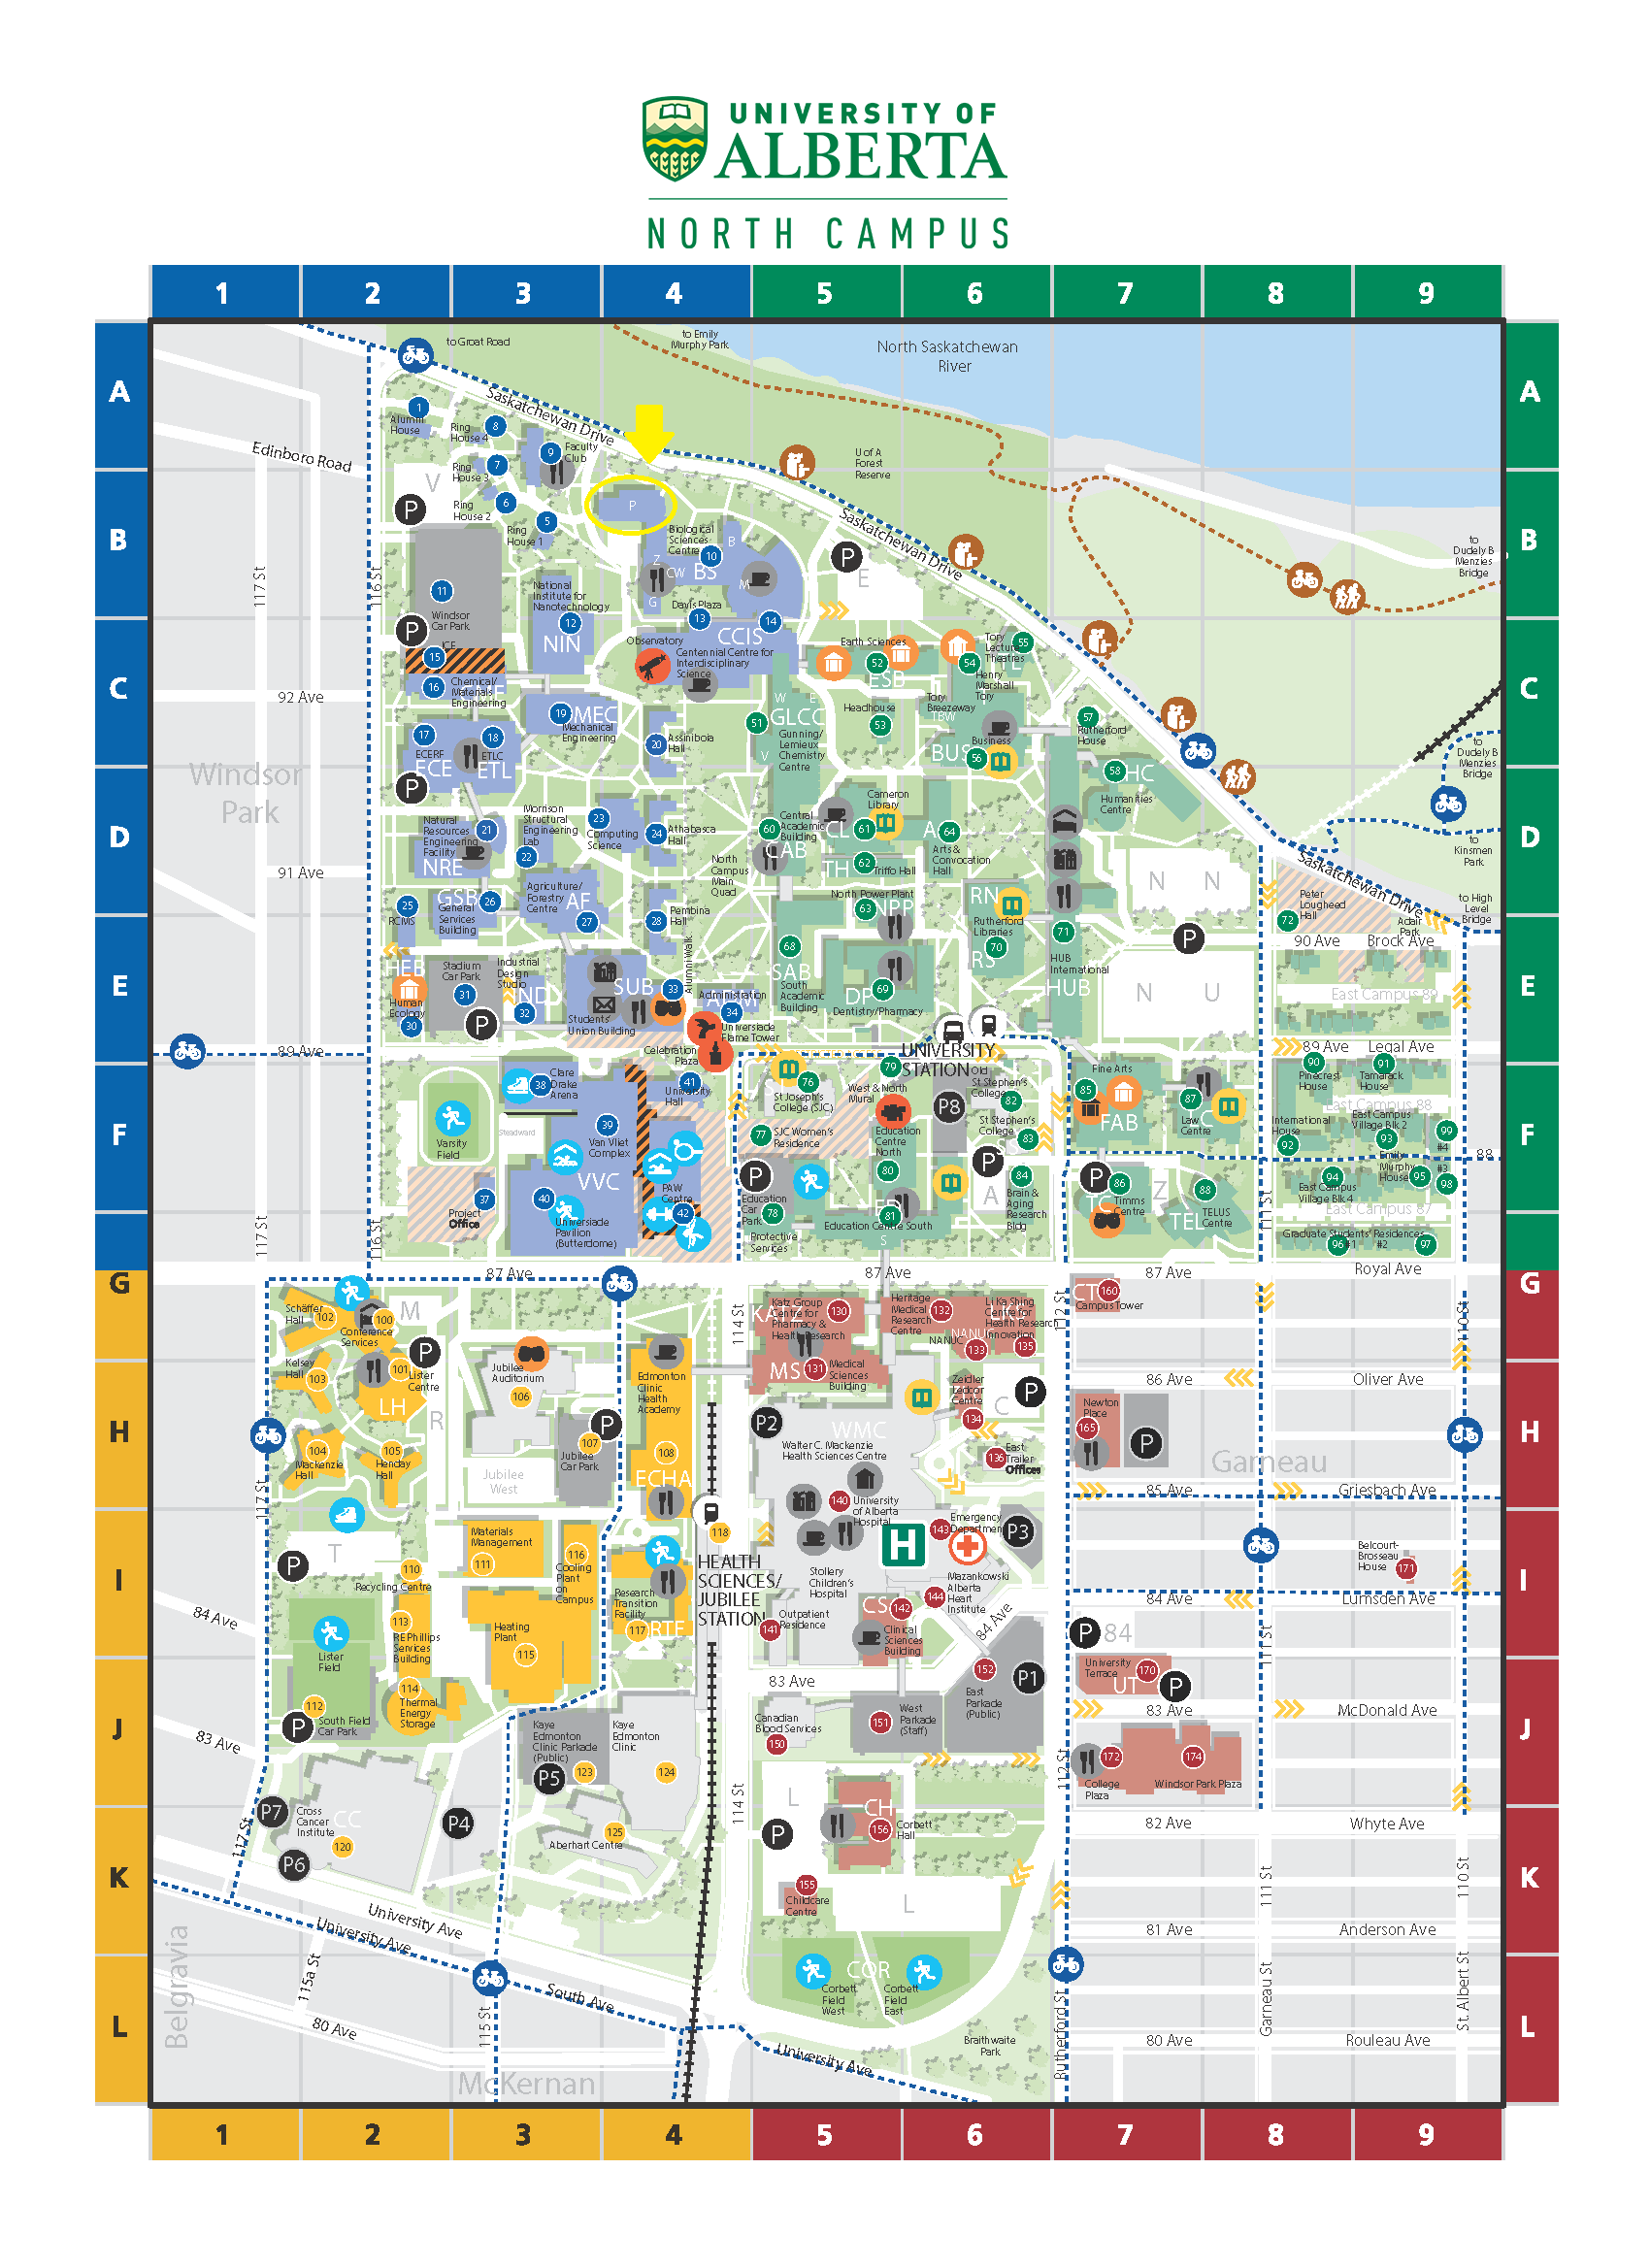 U Of A Map University Of Alberta Campus Map | compressportnederland U Of A Map